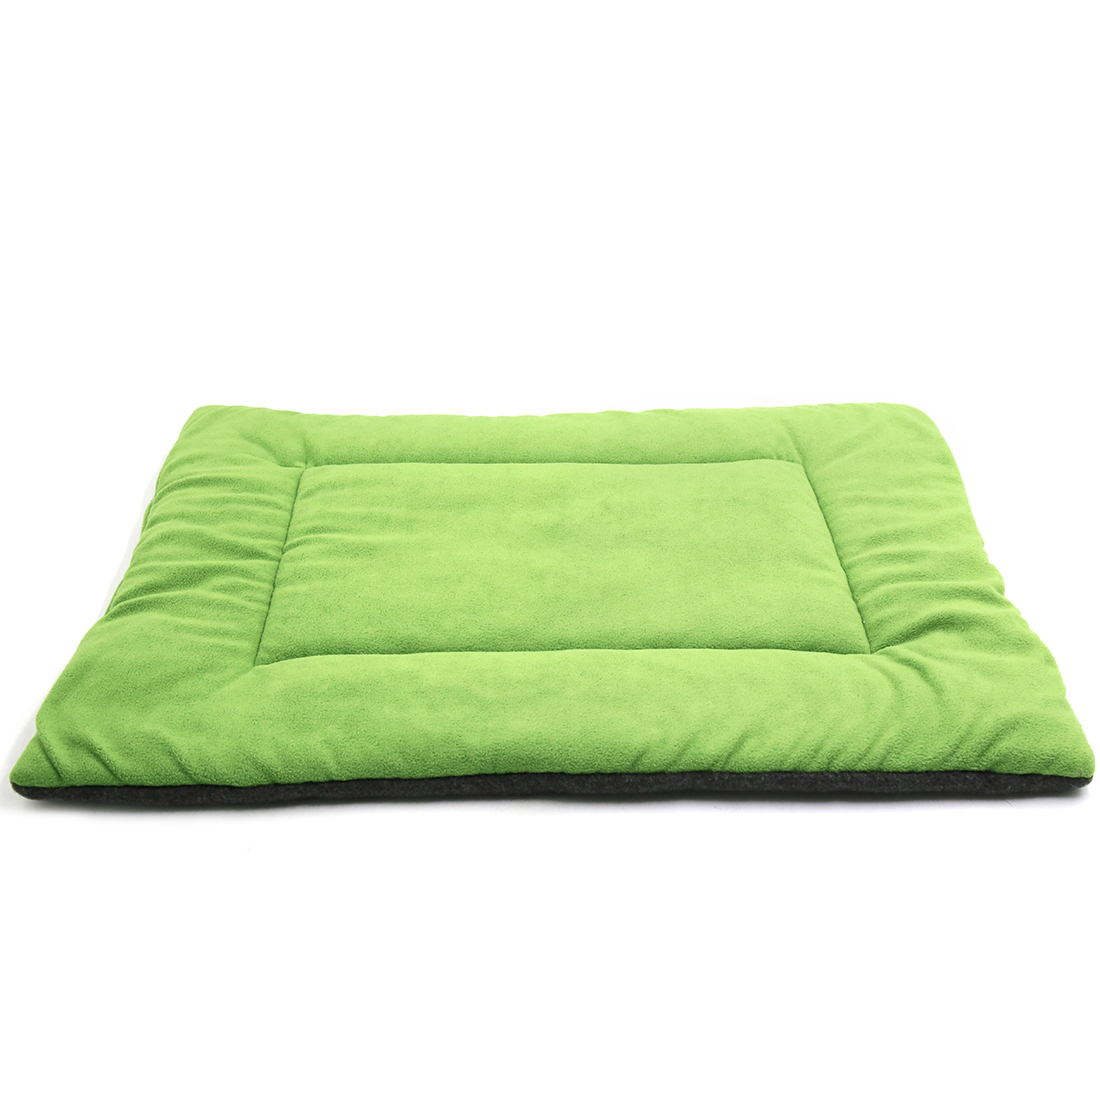 Fleece Reversible Mat Cushion Pad Bed for Dog Cat Puppy Pet Green M